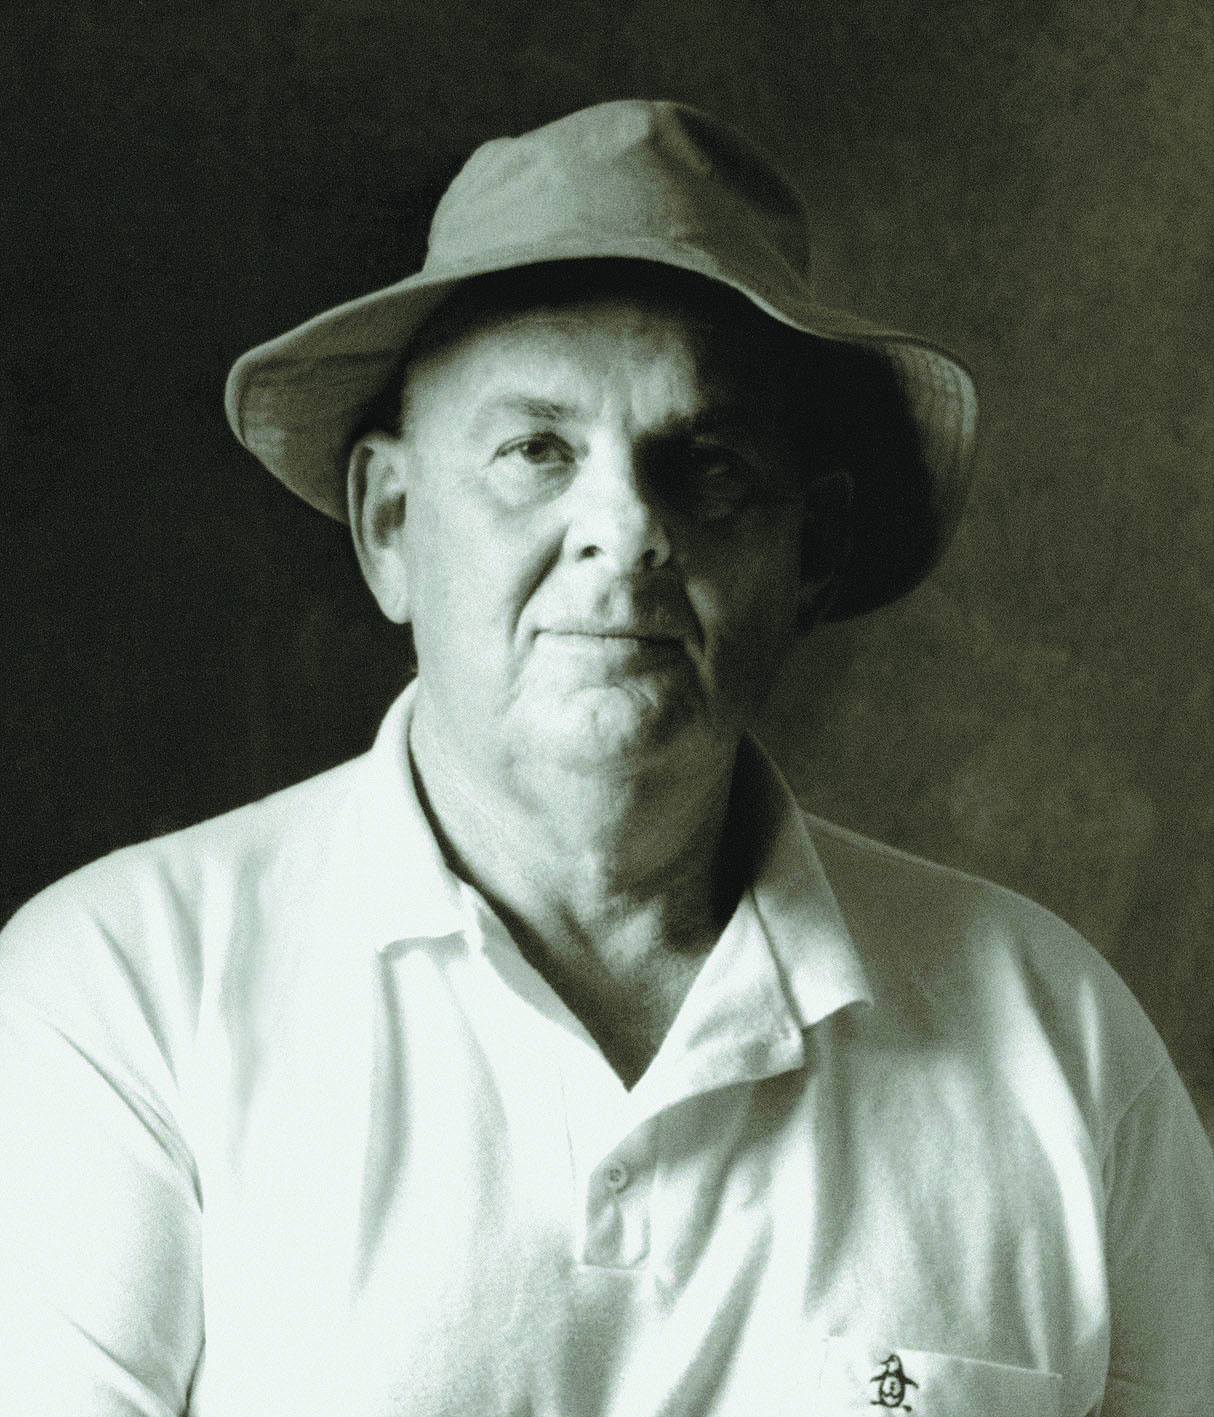 les murray and his poems From his life's work so far, spanning more than four decades, les murray has  selected these 100 poems, his personal best including classics.